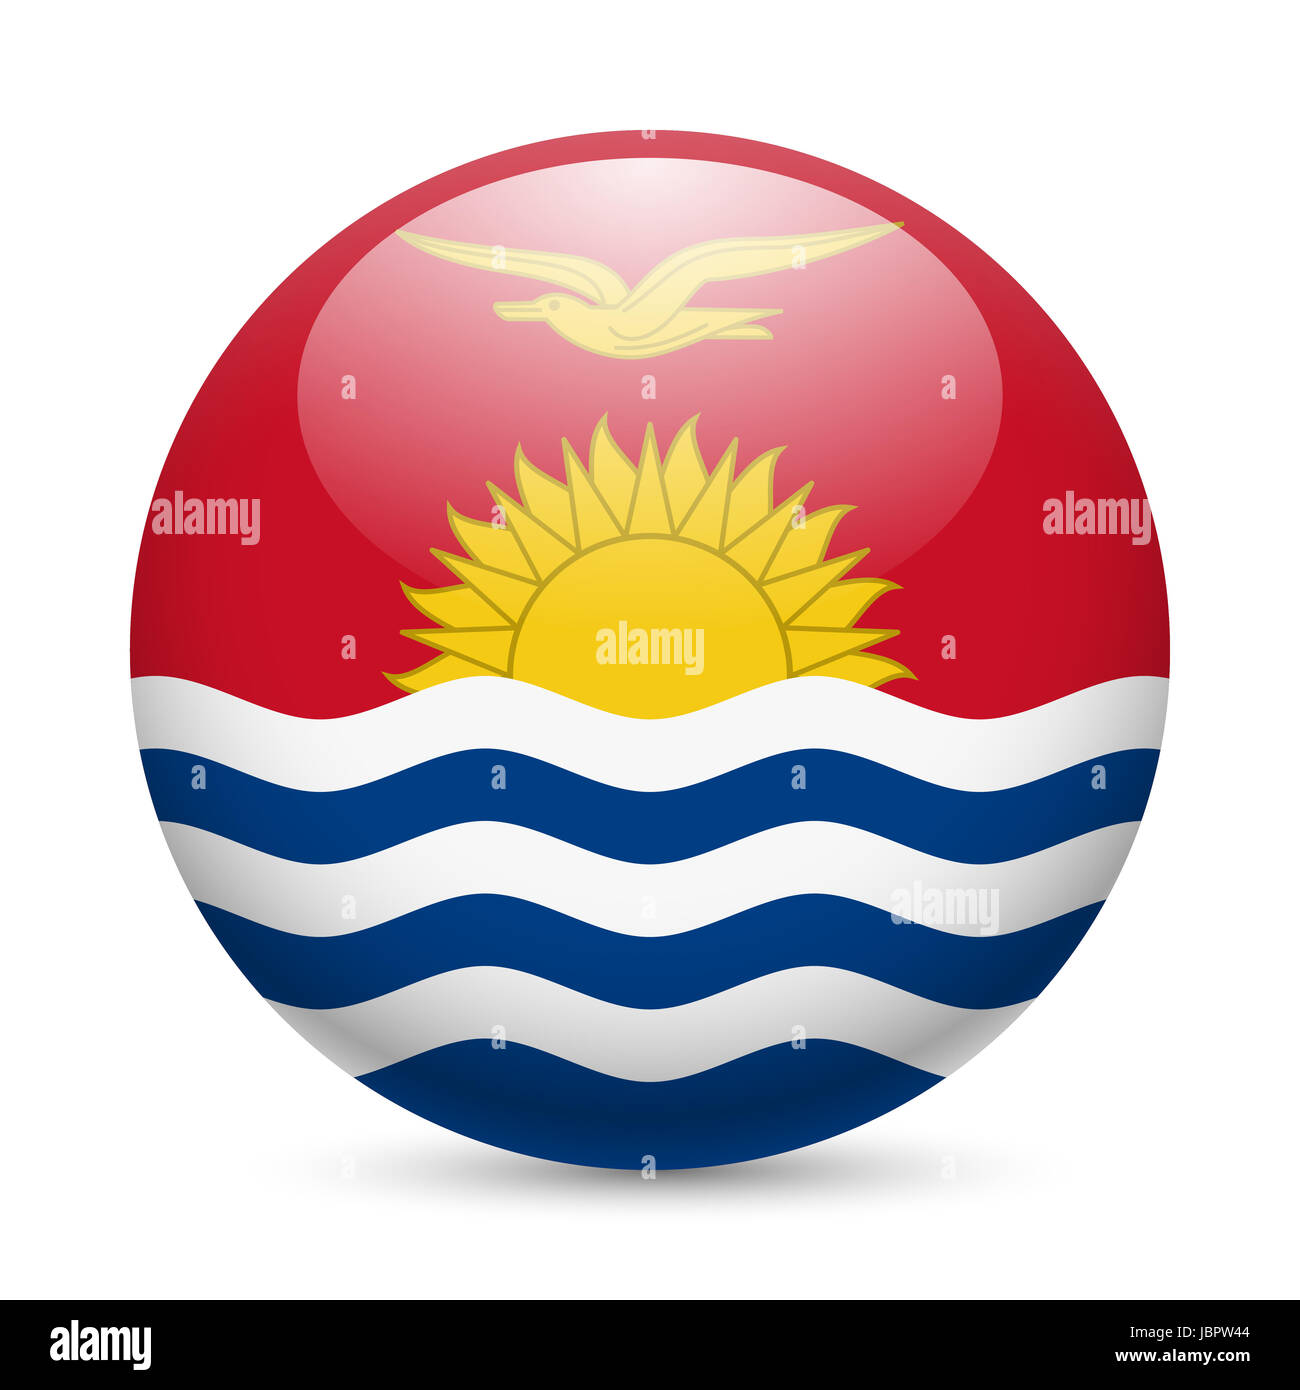 Flag of Kiribati as round glossy icon. Button with flag design - Stock Image